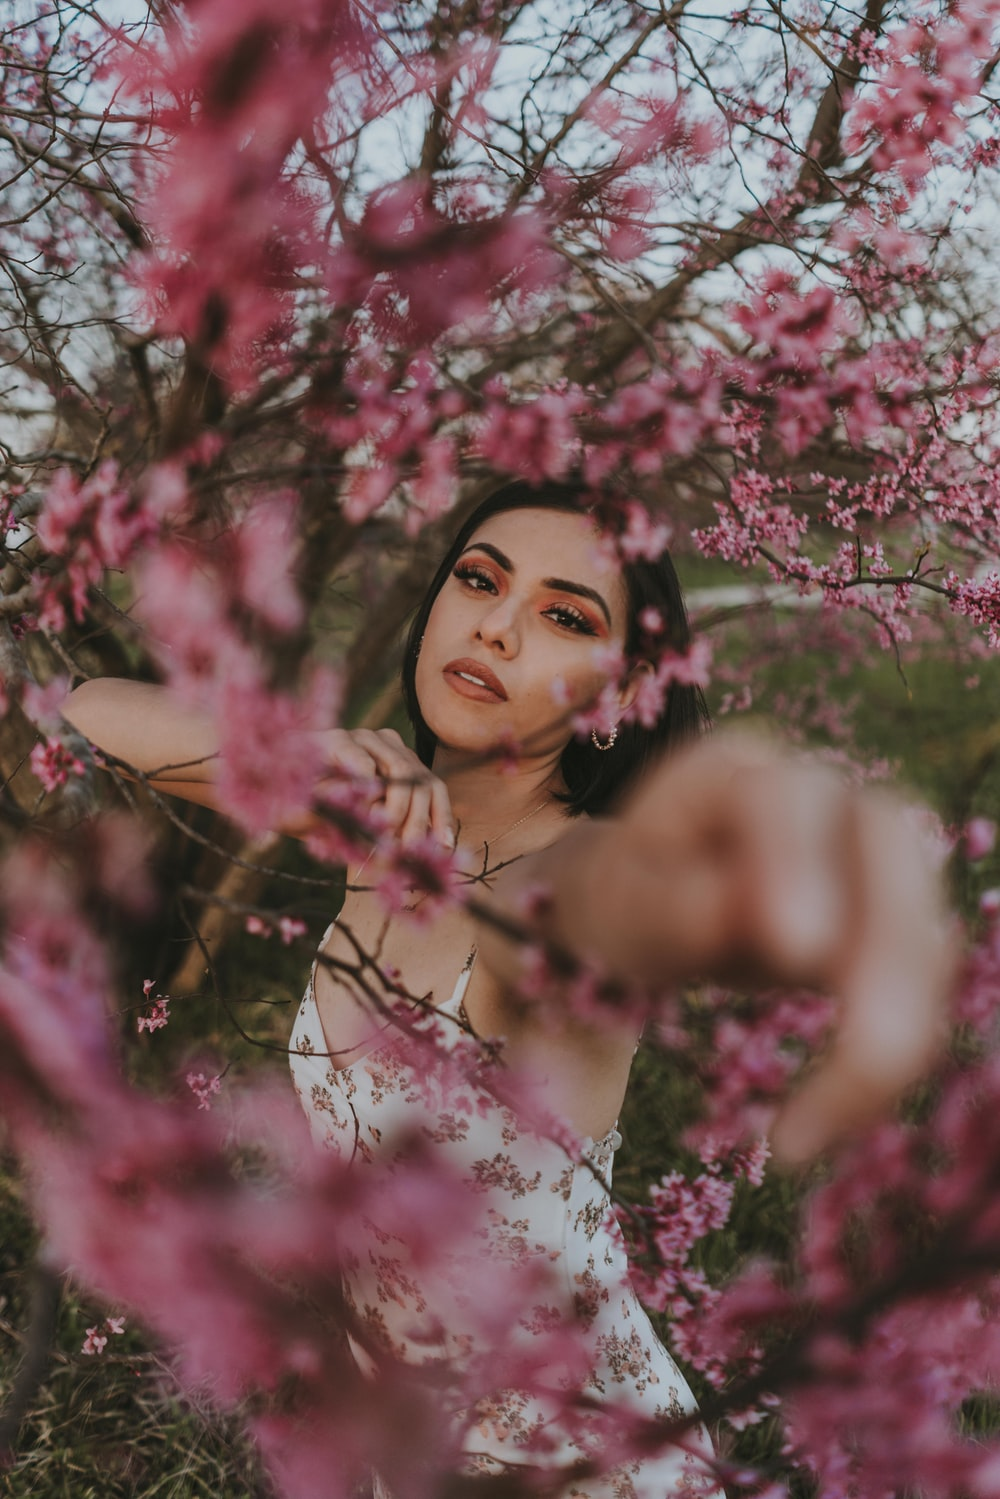 woman in pink floral dress standing under pink cherry blossom tree during daytime